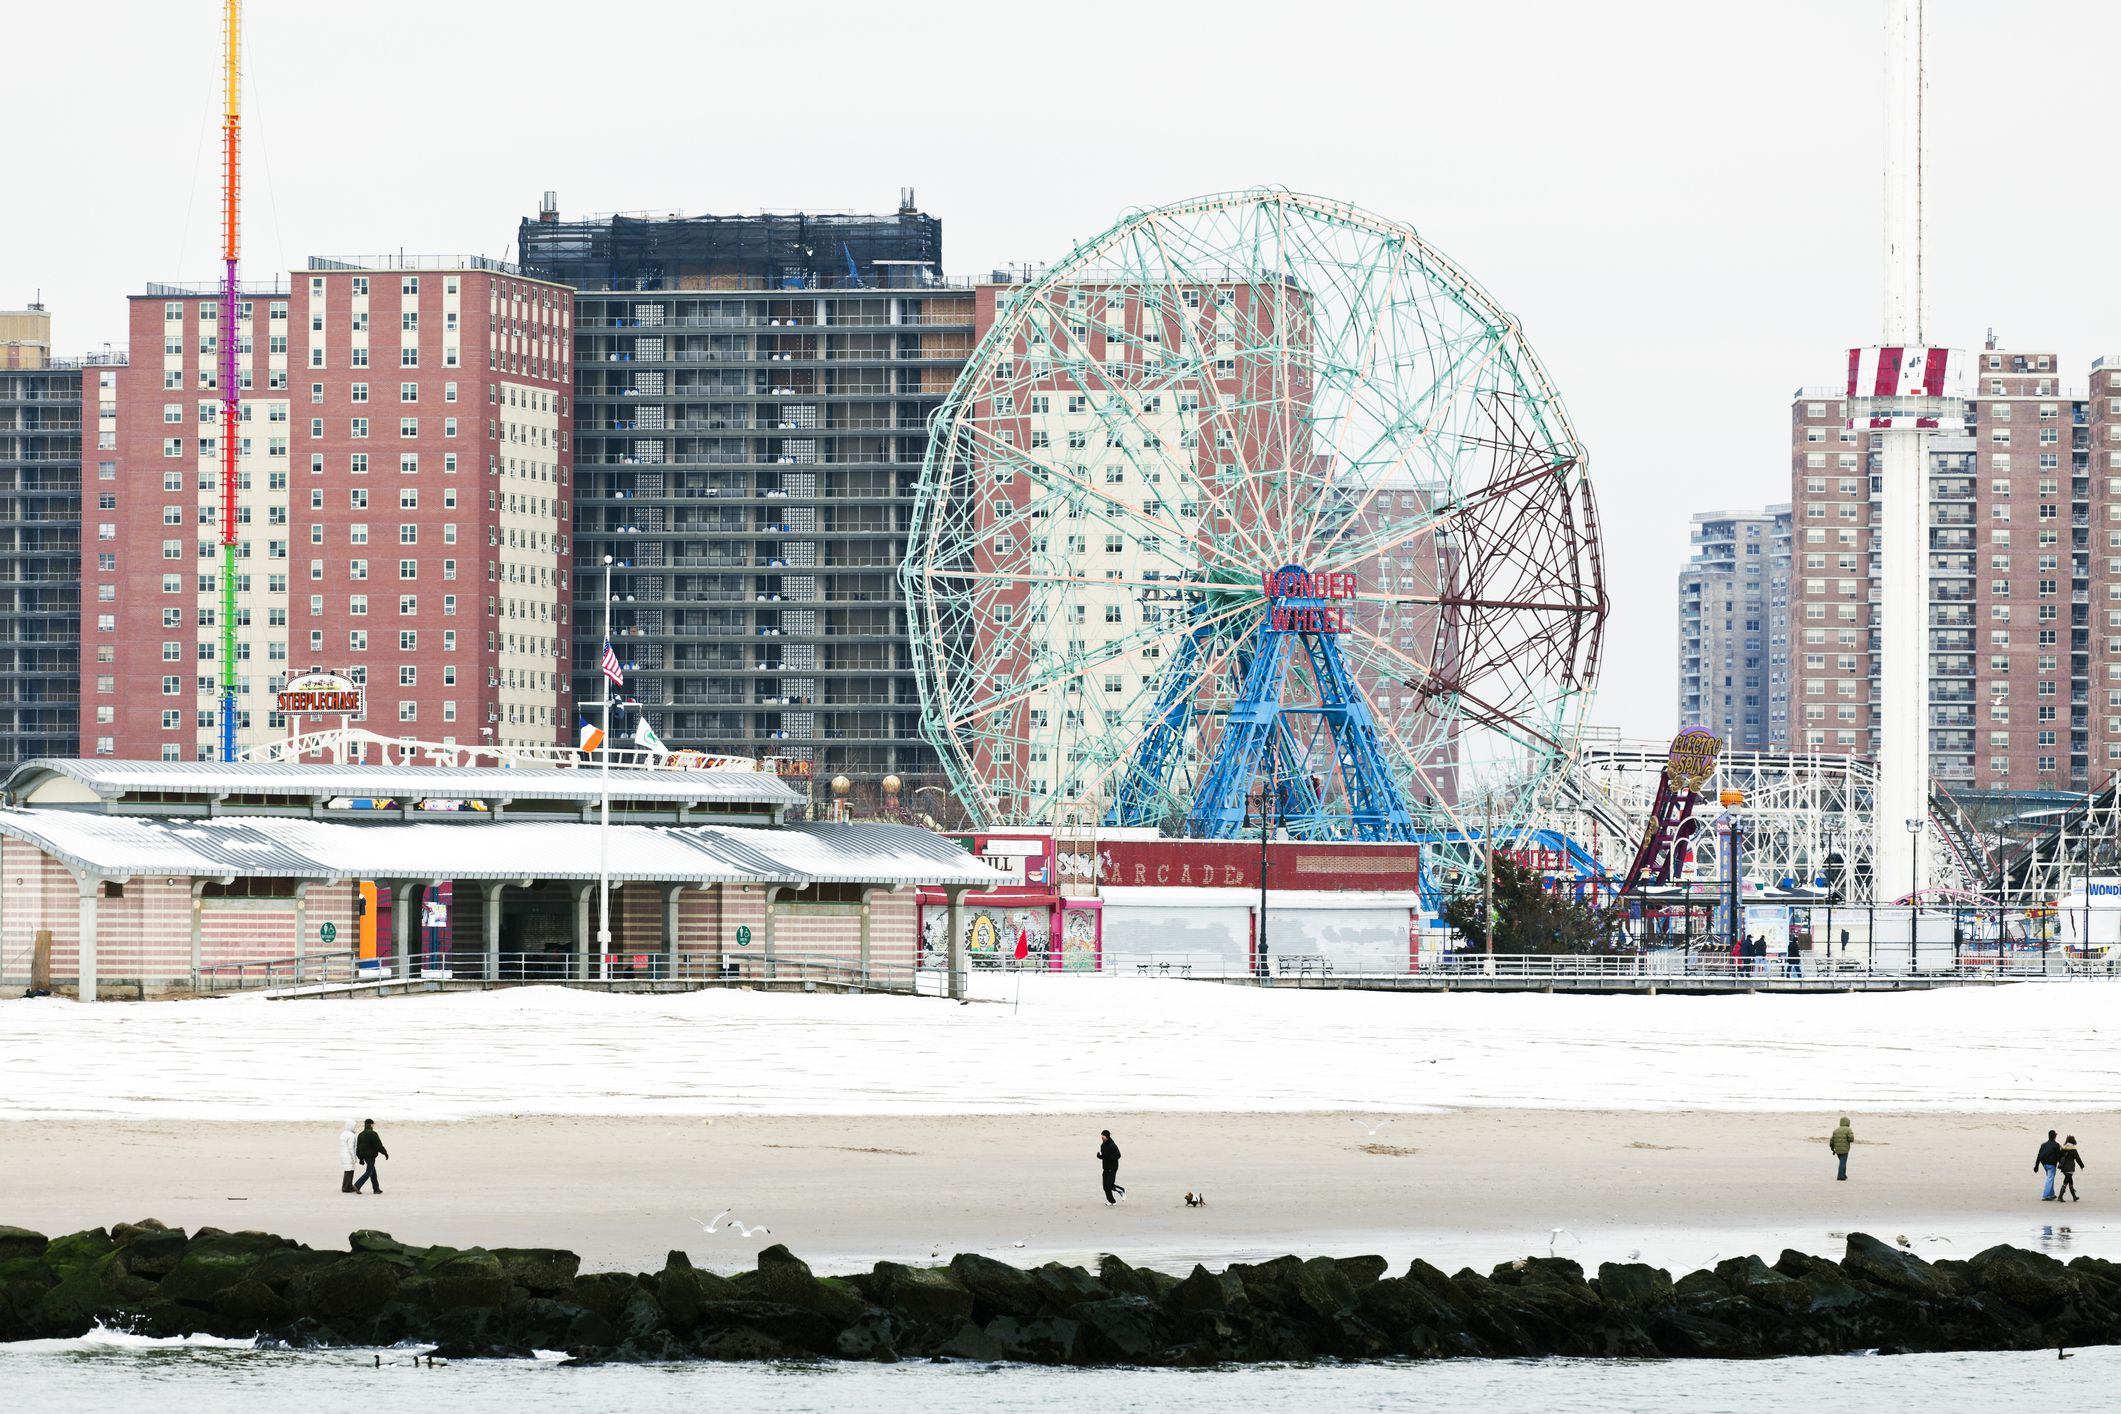 Top 6 things to do at new york 39 s coney island in winter for Things to do in new york in winter